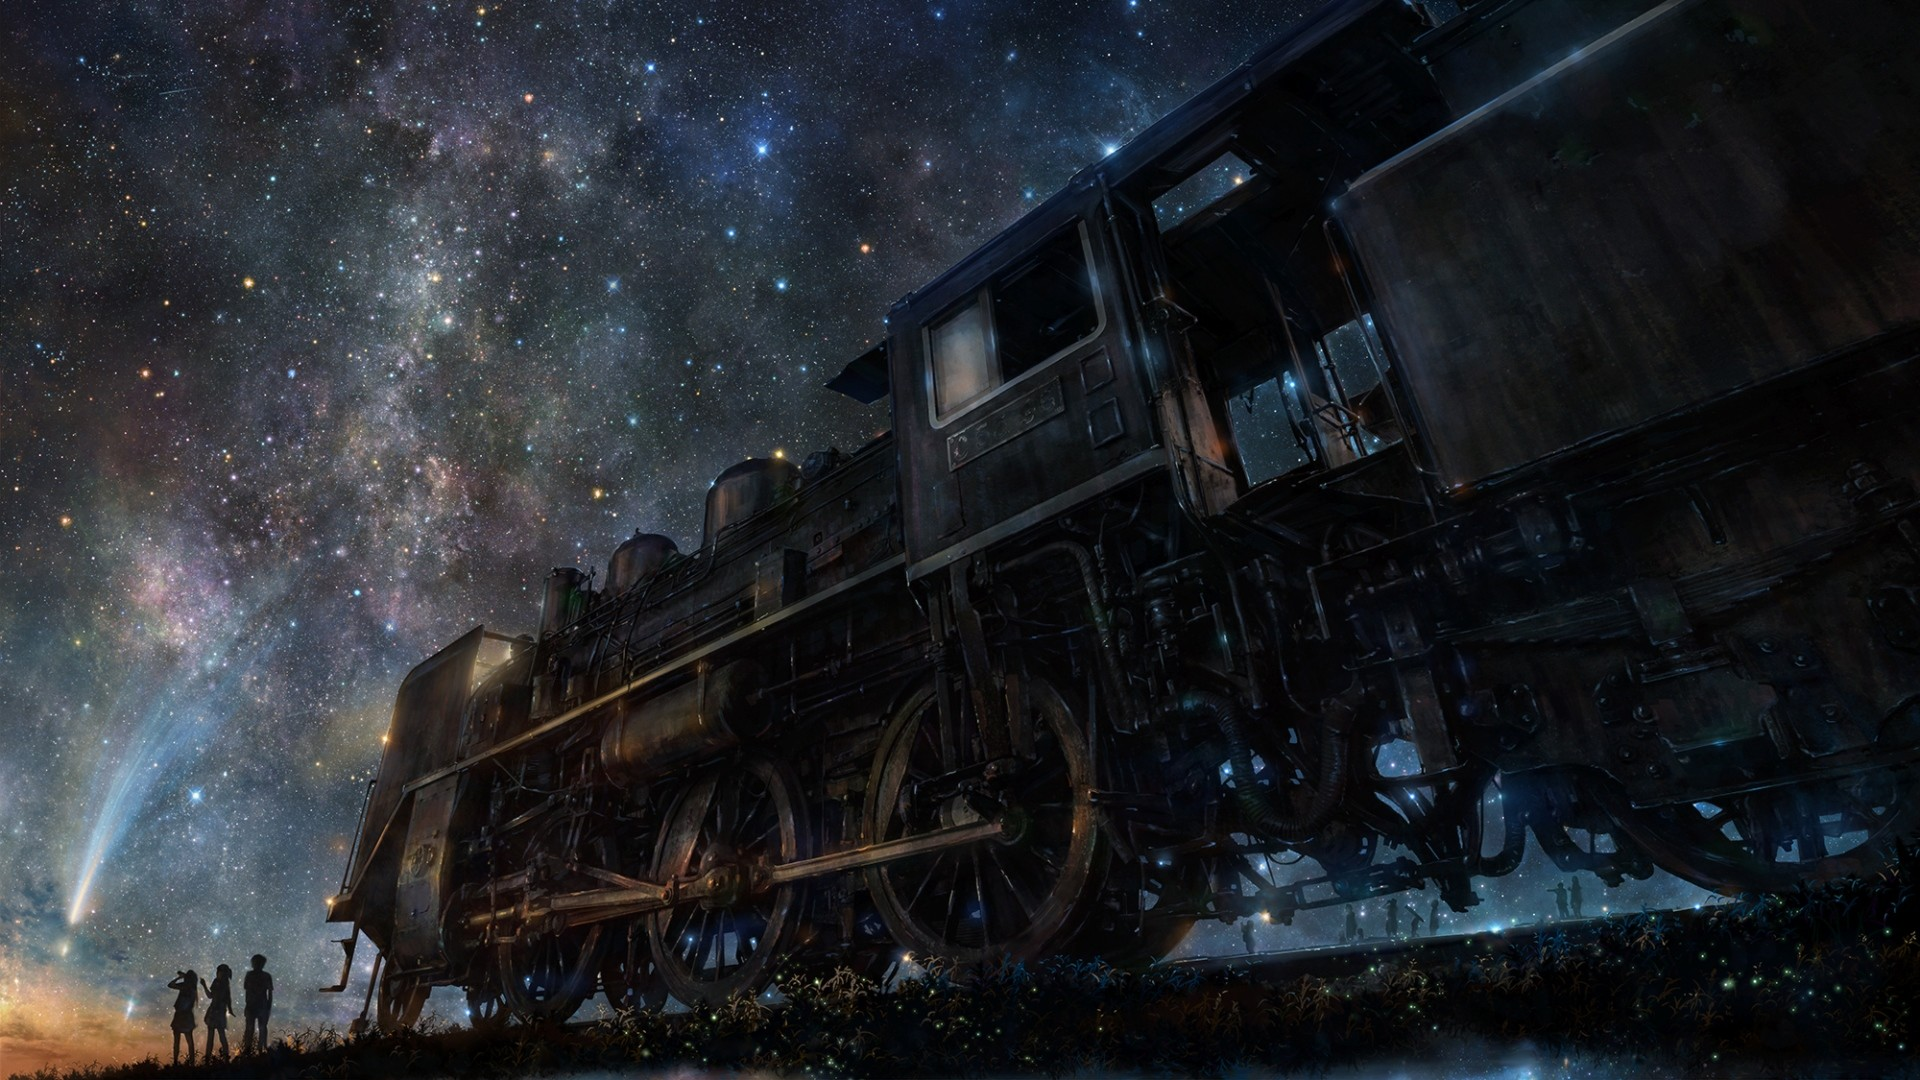 1920x1080 Preview wallpaper iy tujiki, art, night, train, anime, starry sky